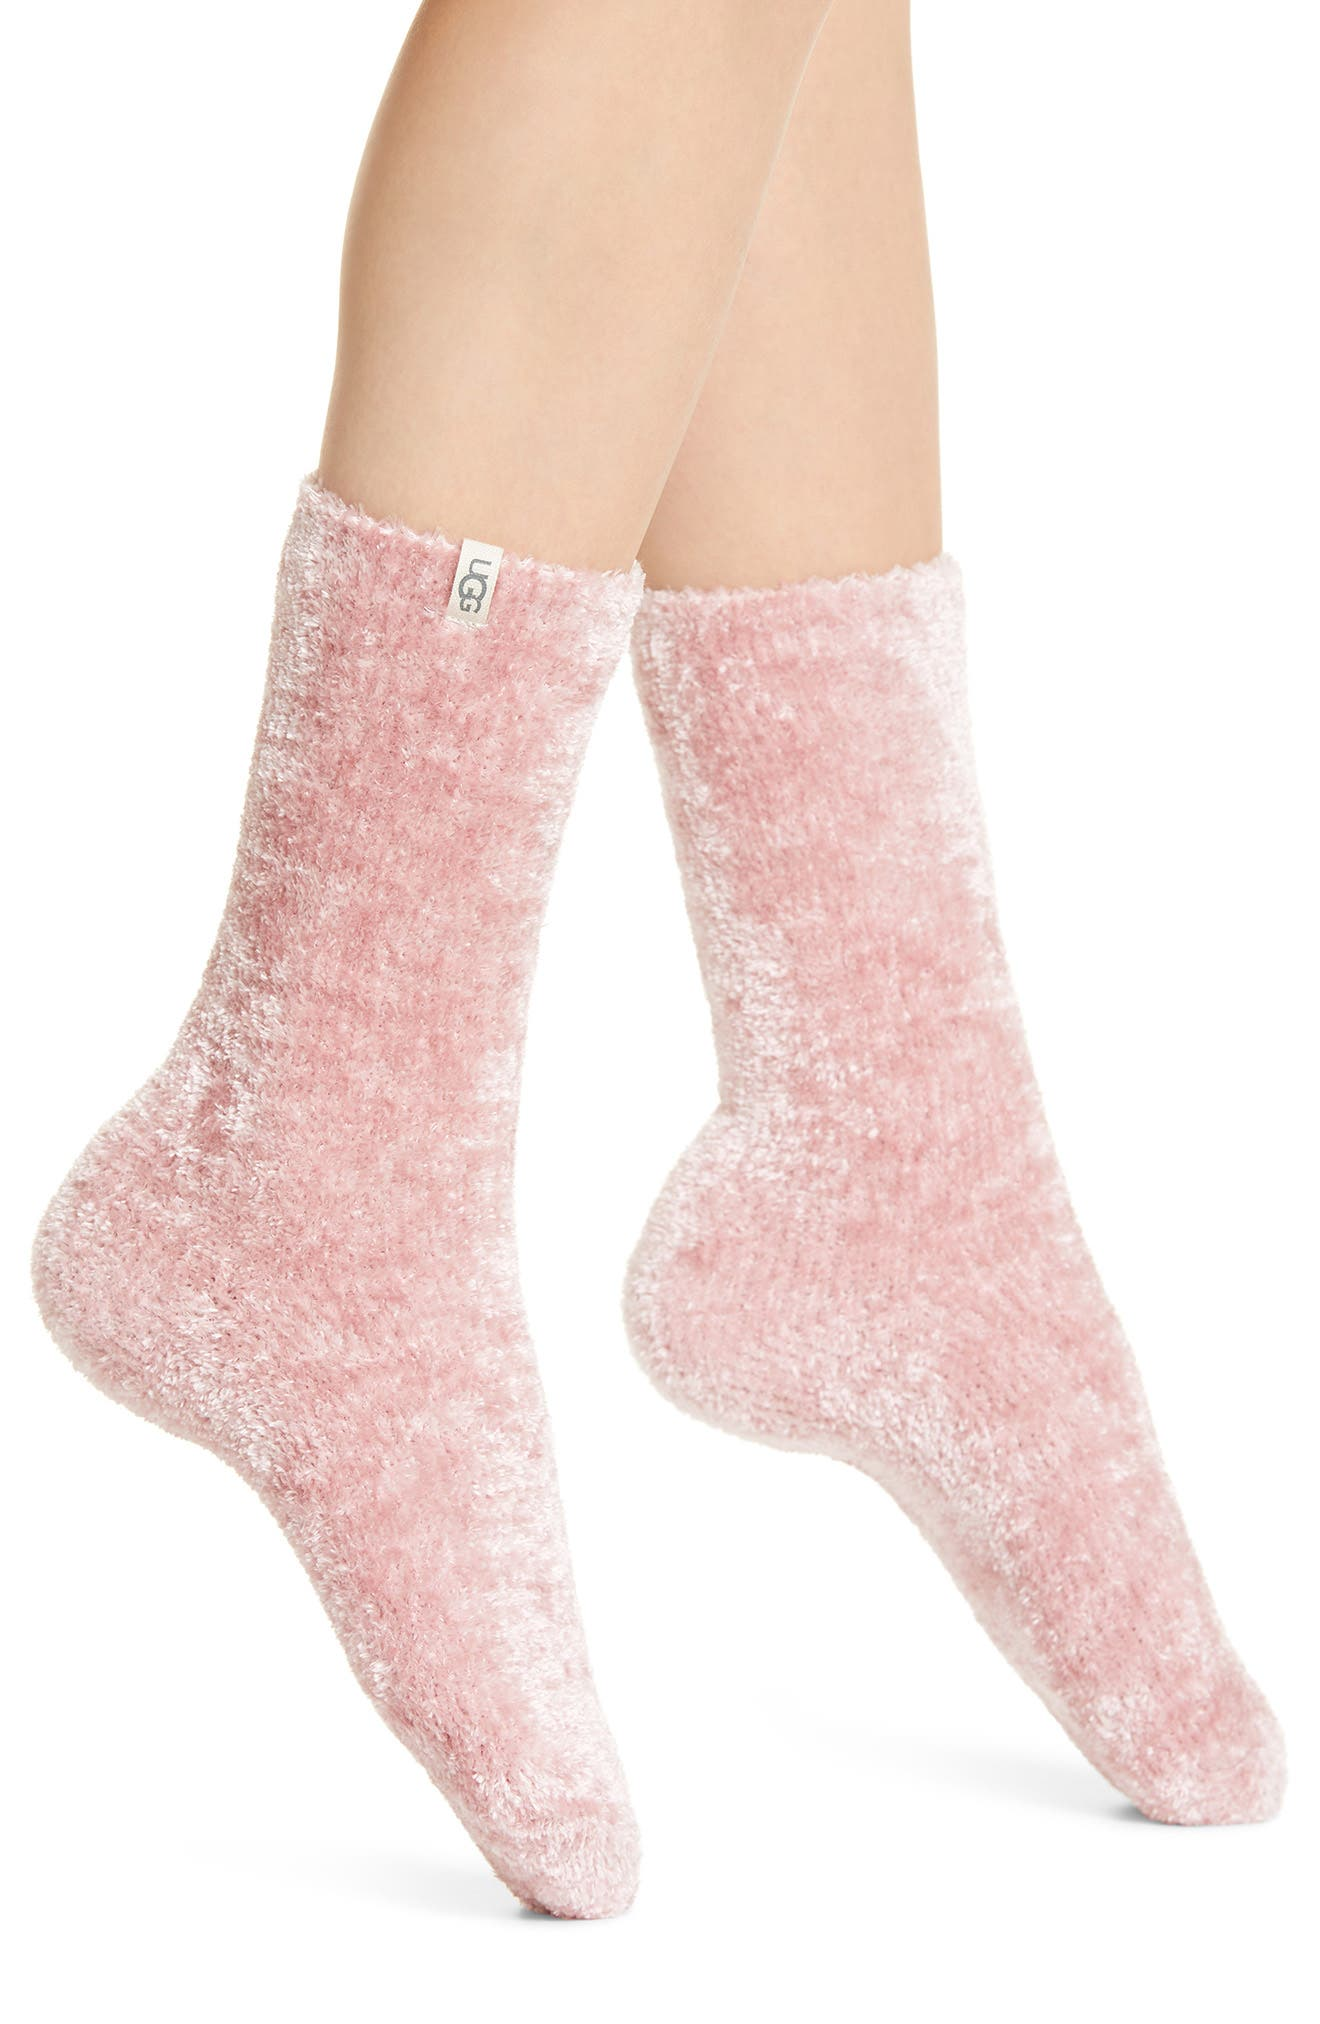 Keep your toes toasty warm with these fuzzy, stretchy socks. Style Name: UGG Leda Cozy Socks. Style Number: 5877157. Available in stores.